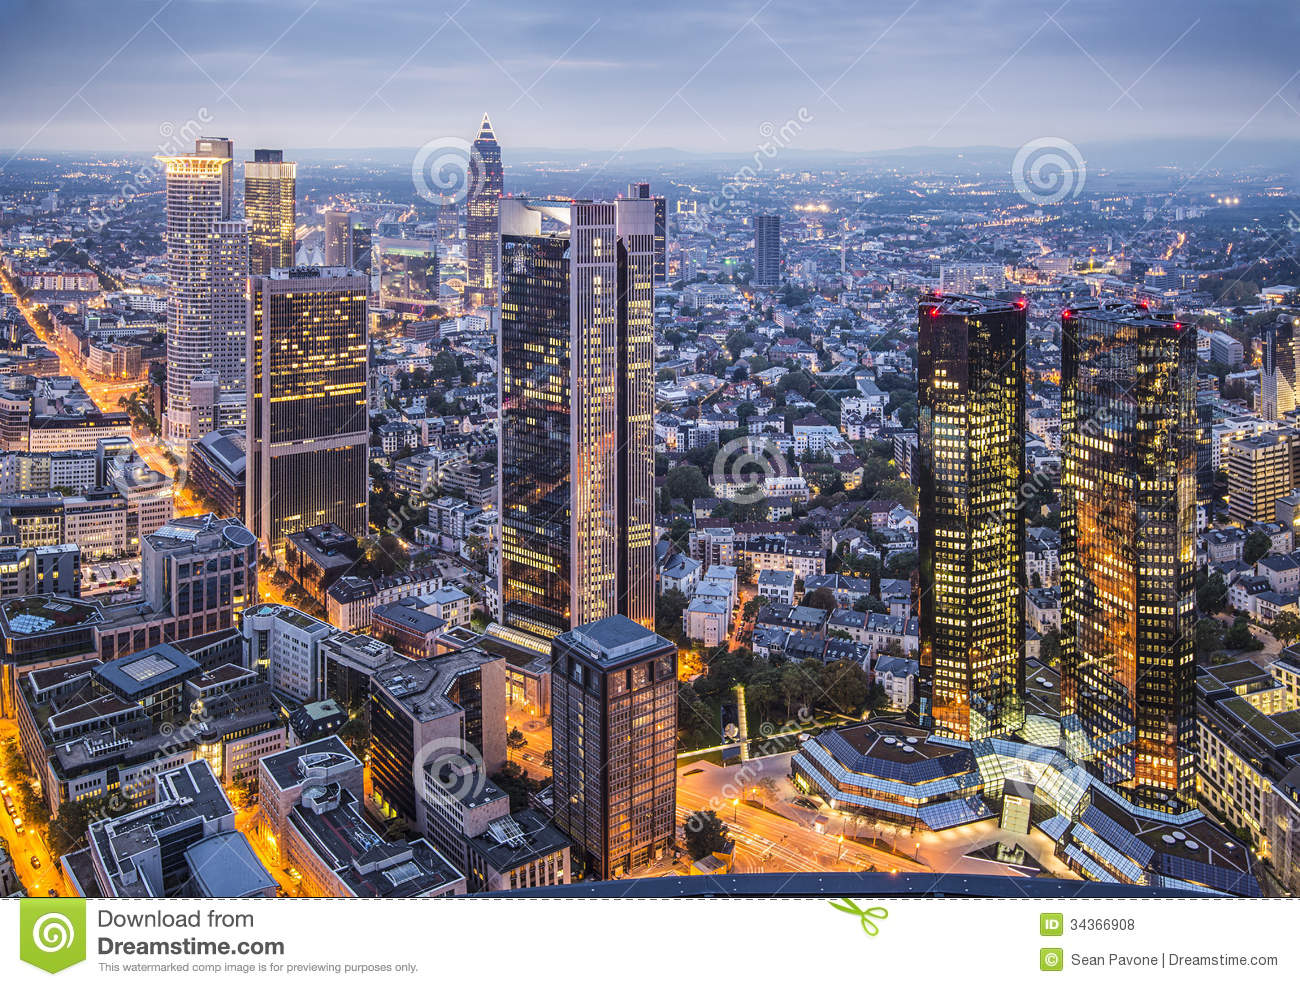 Cityscape of frankfurt, germany, the financial center of the country